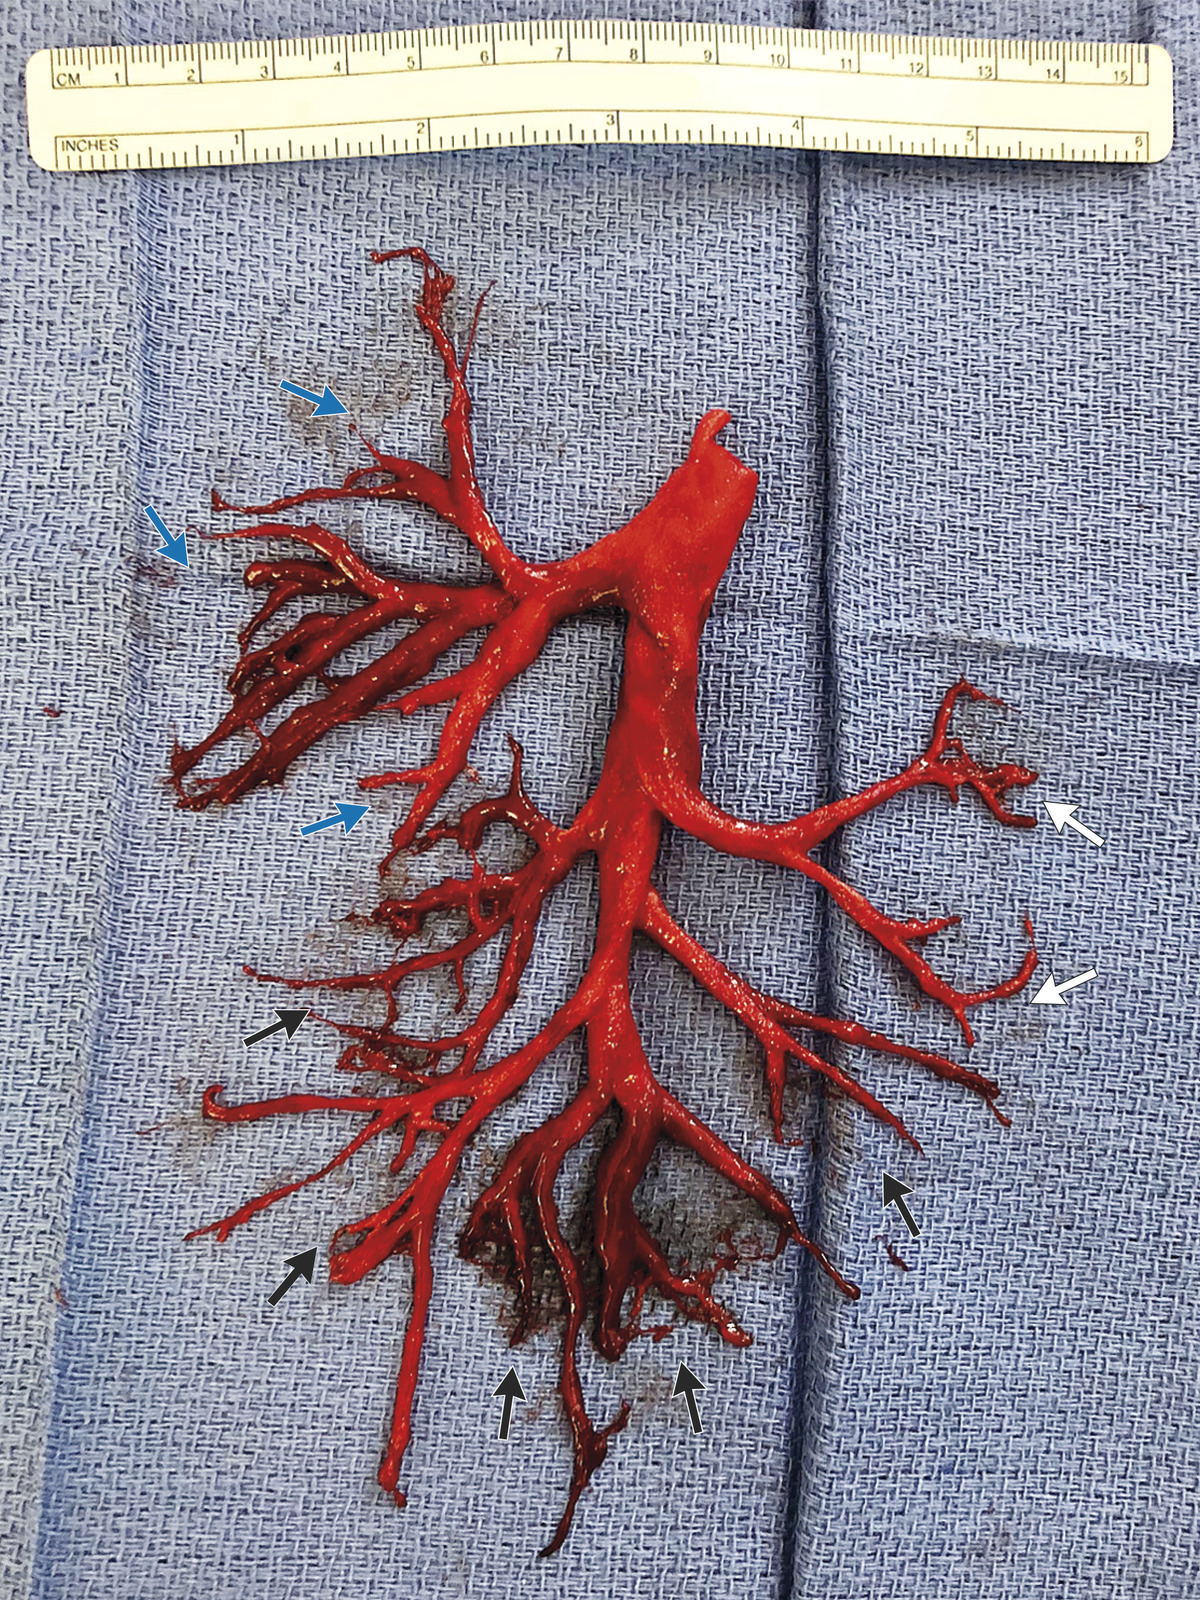 The man coughed up the right bronchial tree. Credit: NEJM